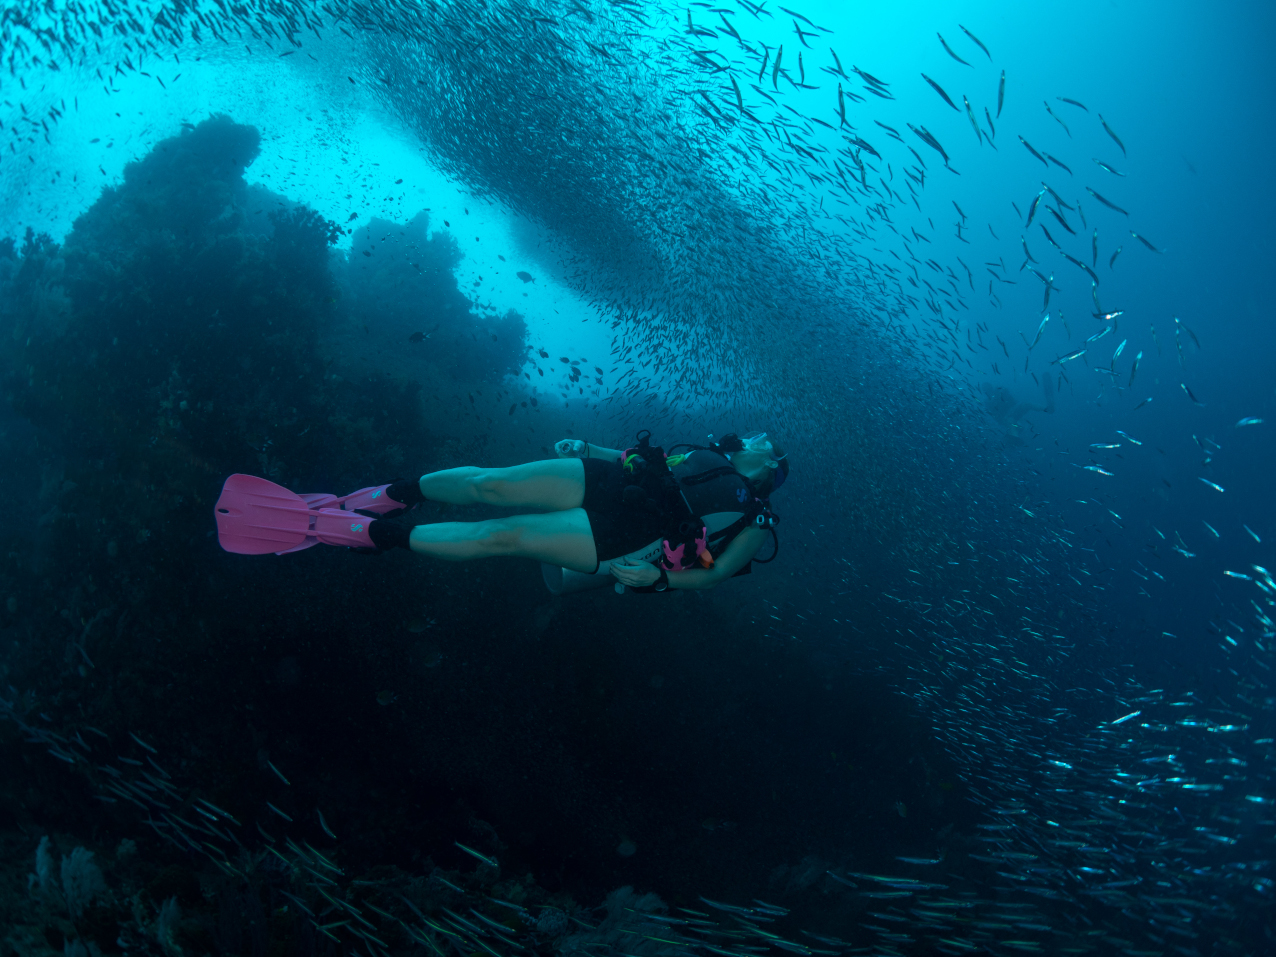 a scuba diver swimming underwater between many small fish